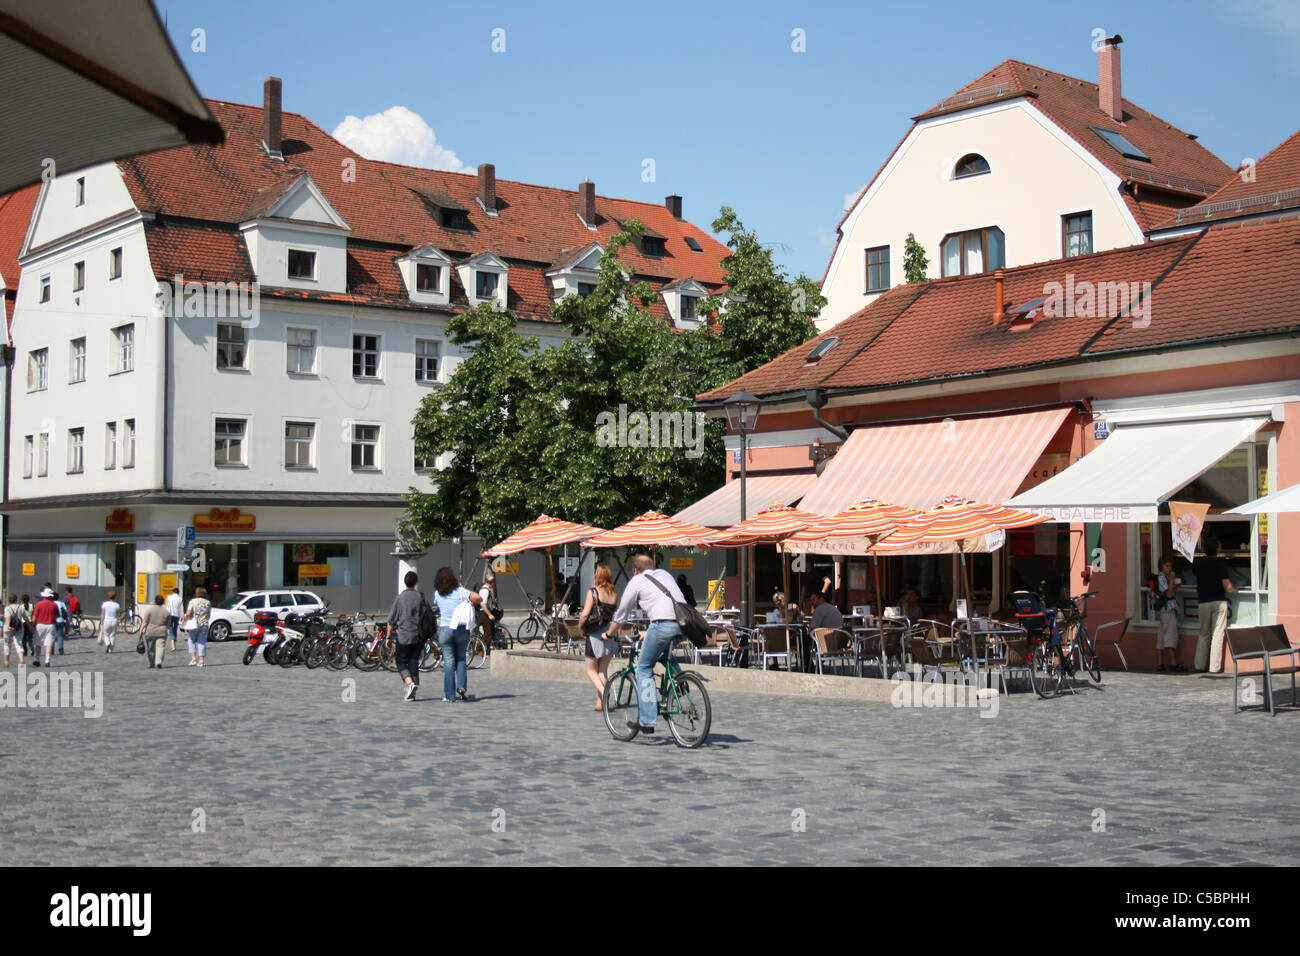 regensburg germany june 19 2008 summer day street scene in stock photo 37753229 alamy. Black Bedroom Furniture Sets. Home Design Ideas